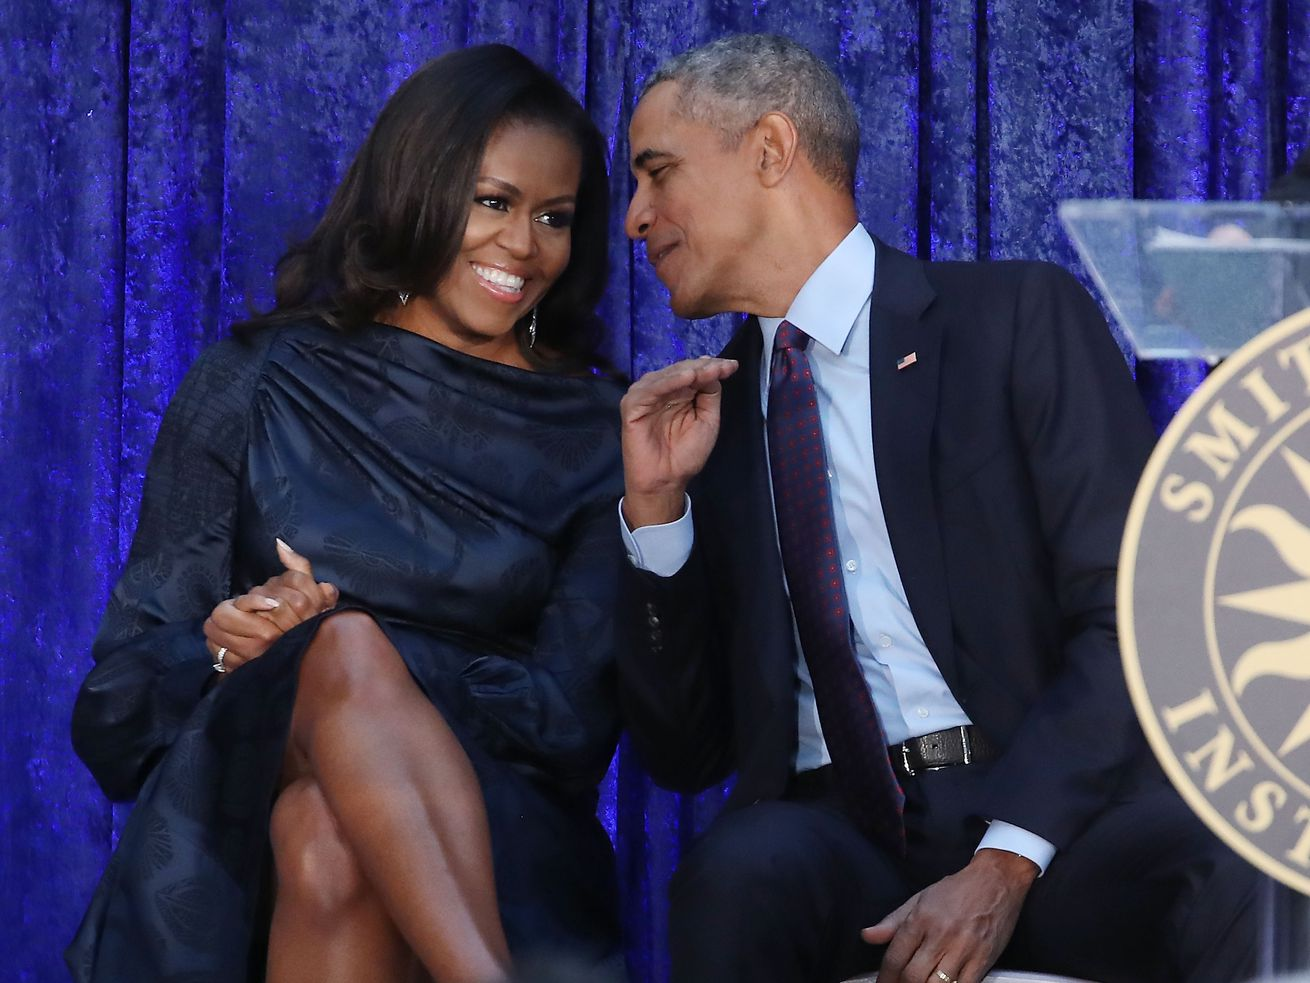 Barack and Michelle Obama at their portrait unveiling in February 2018.